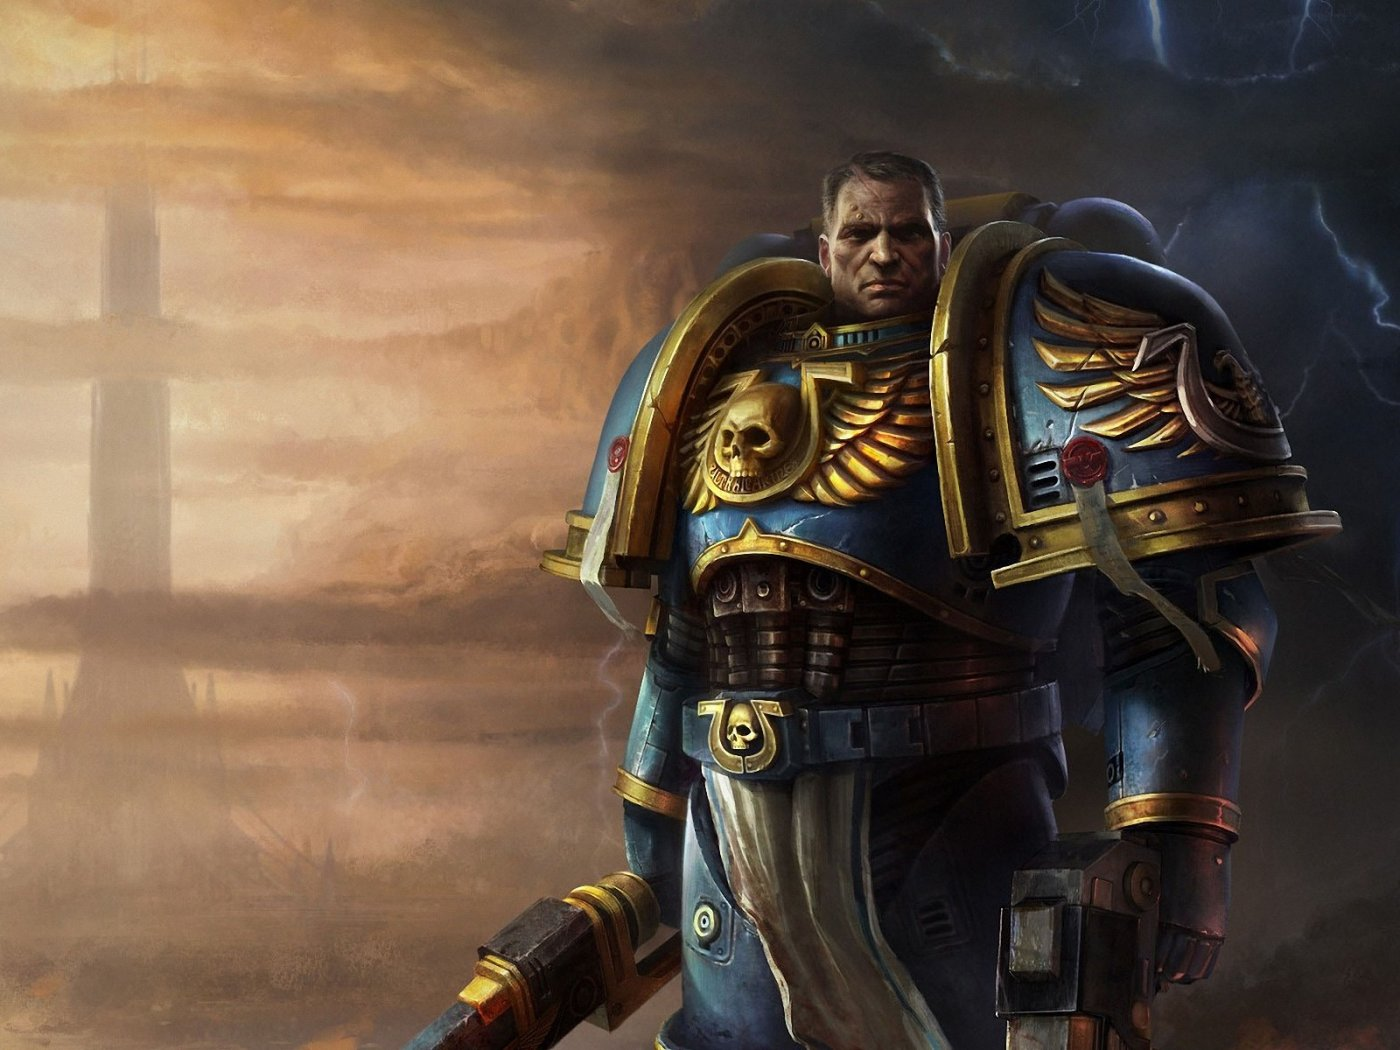 Space Marine 1400x1050 Wallpapers 1400x1050 Wallpapers Pictures 1400x1050